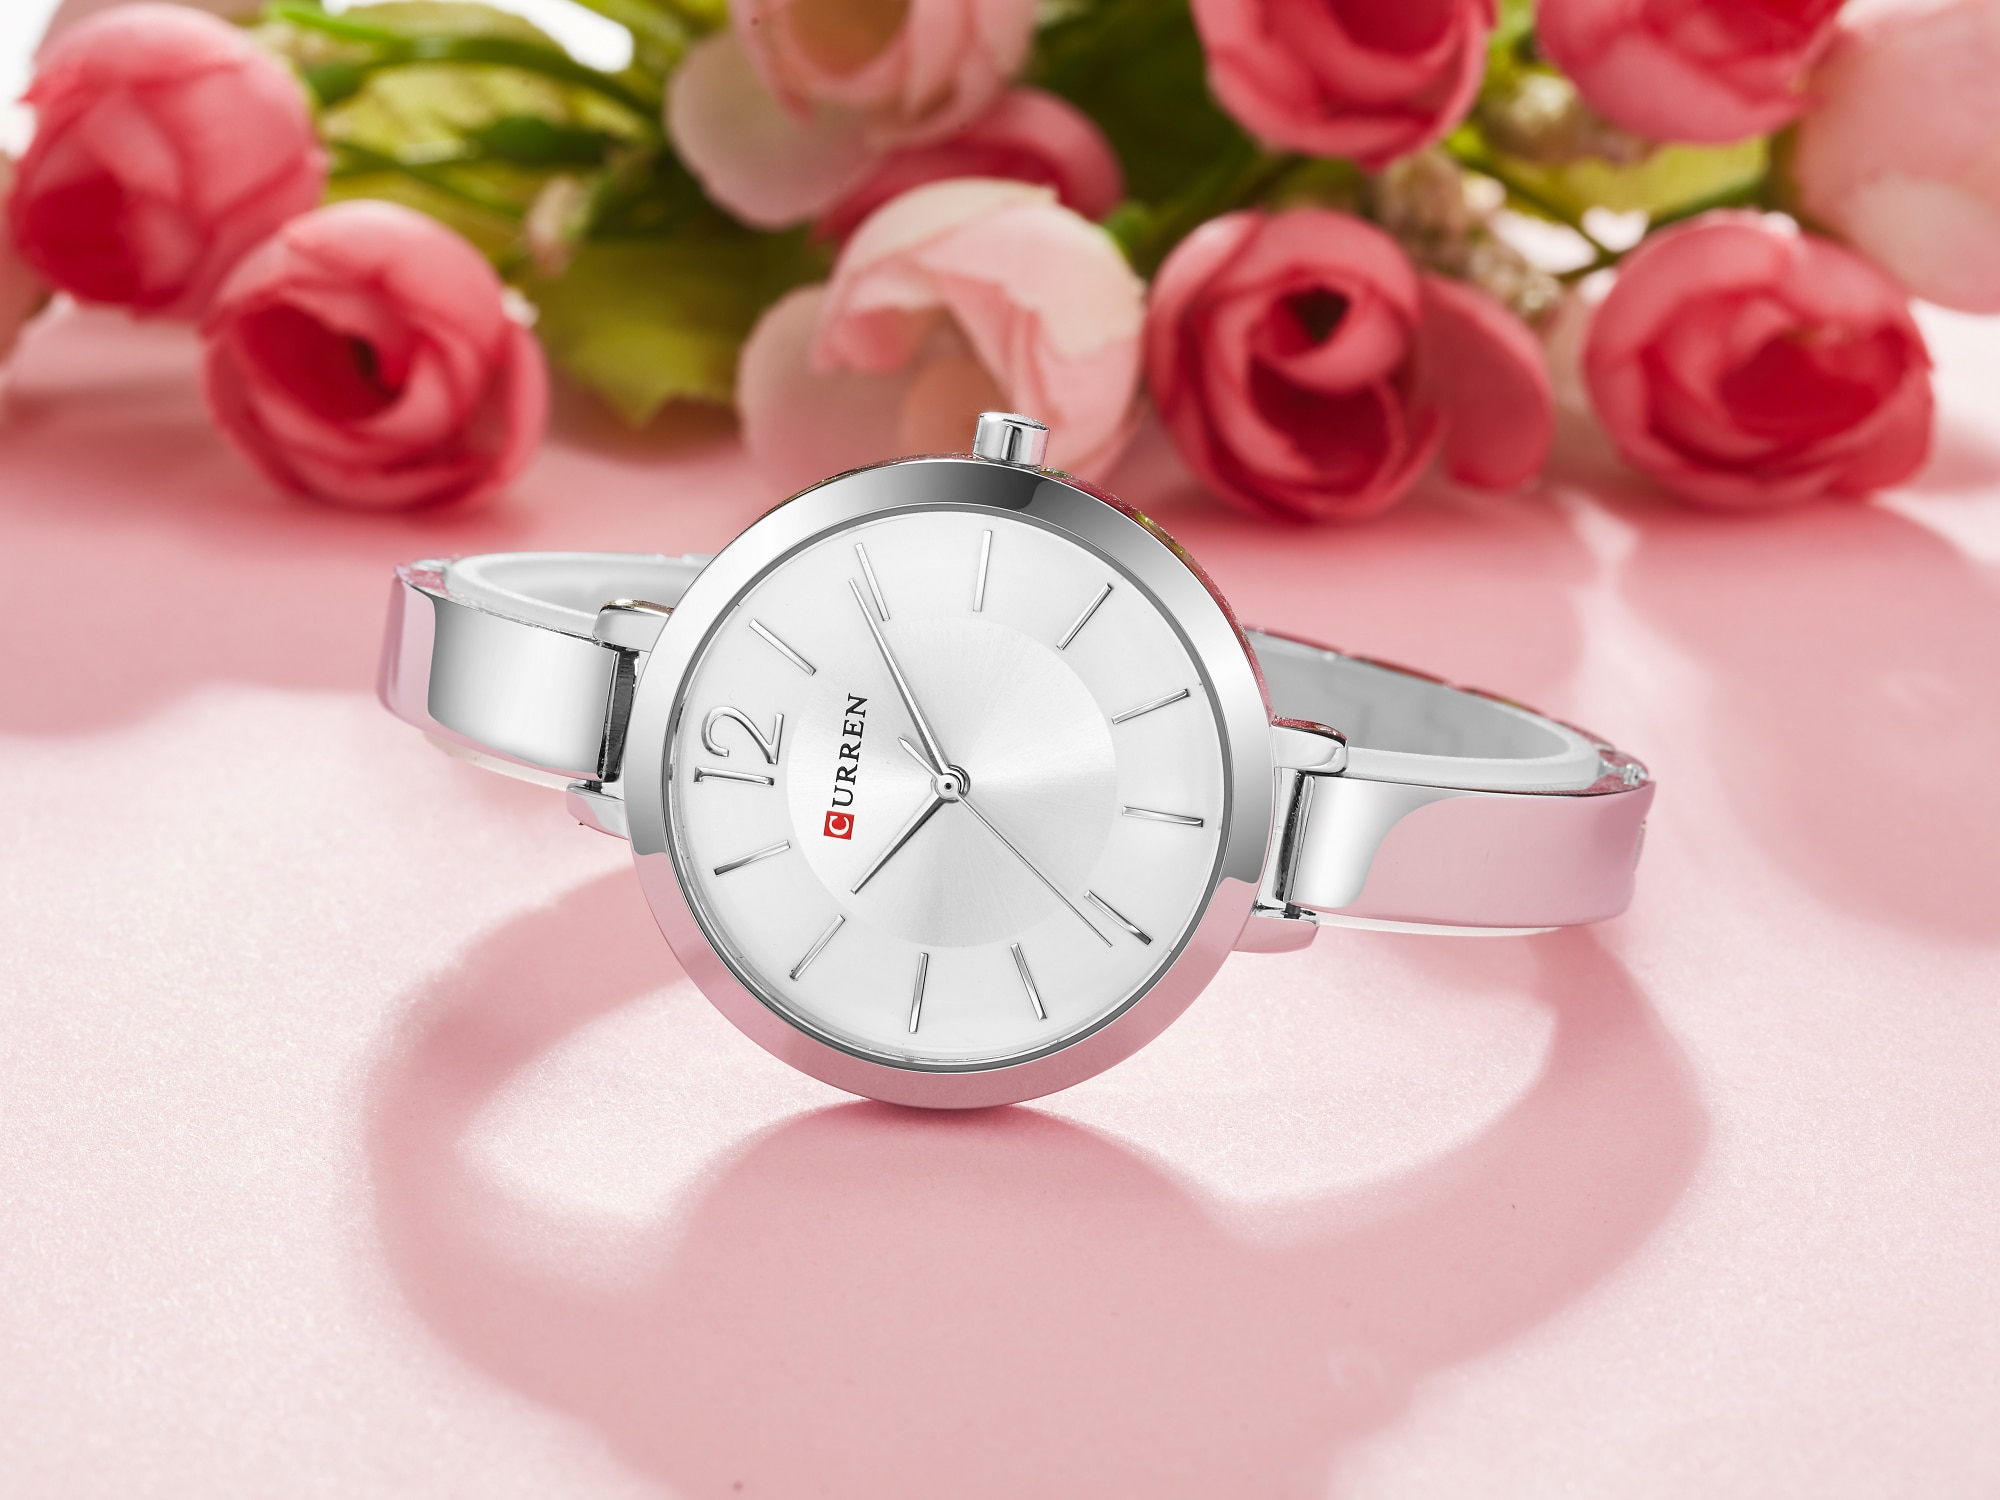 CURREN Top Brand Female Watch Ultra Thin Women Watches Gift Stainless Steel Waterproof Trendy Quartz Clock Relojes Para Mujer enlarge